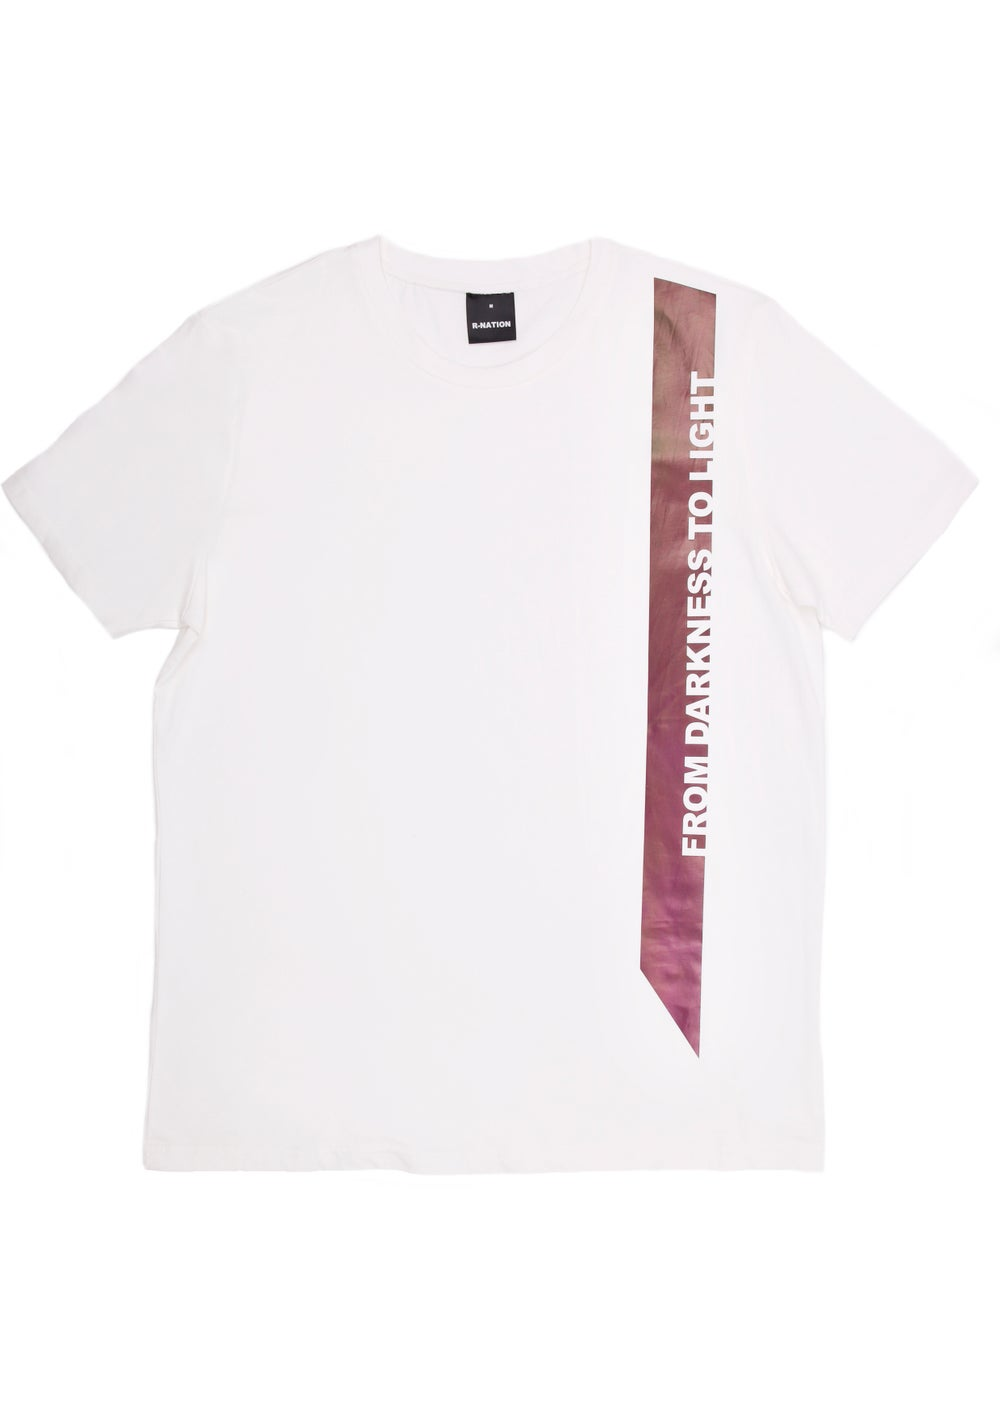 Image of FROM DARKNESS TO LIGHT WHITE TEE SHIRT